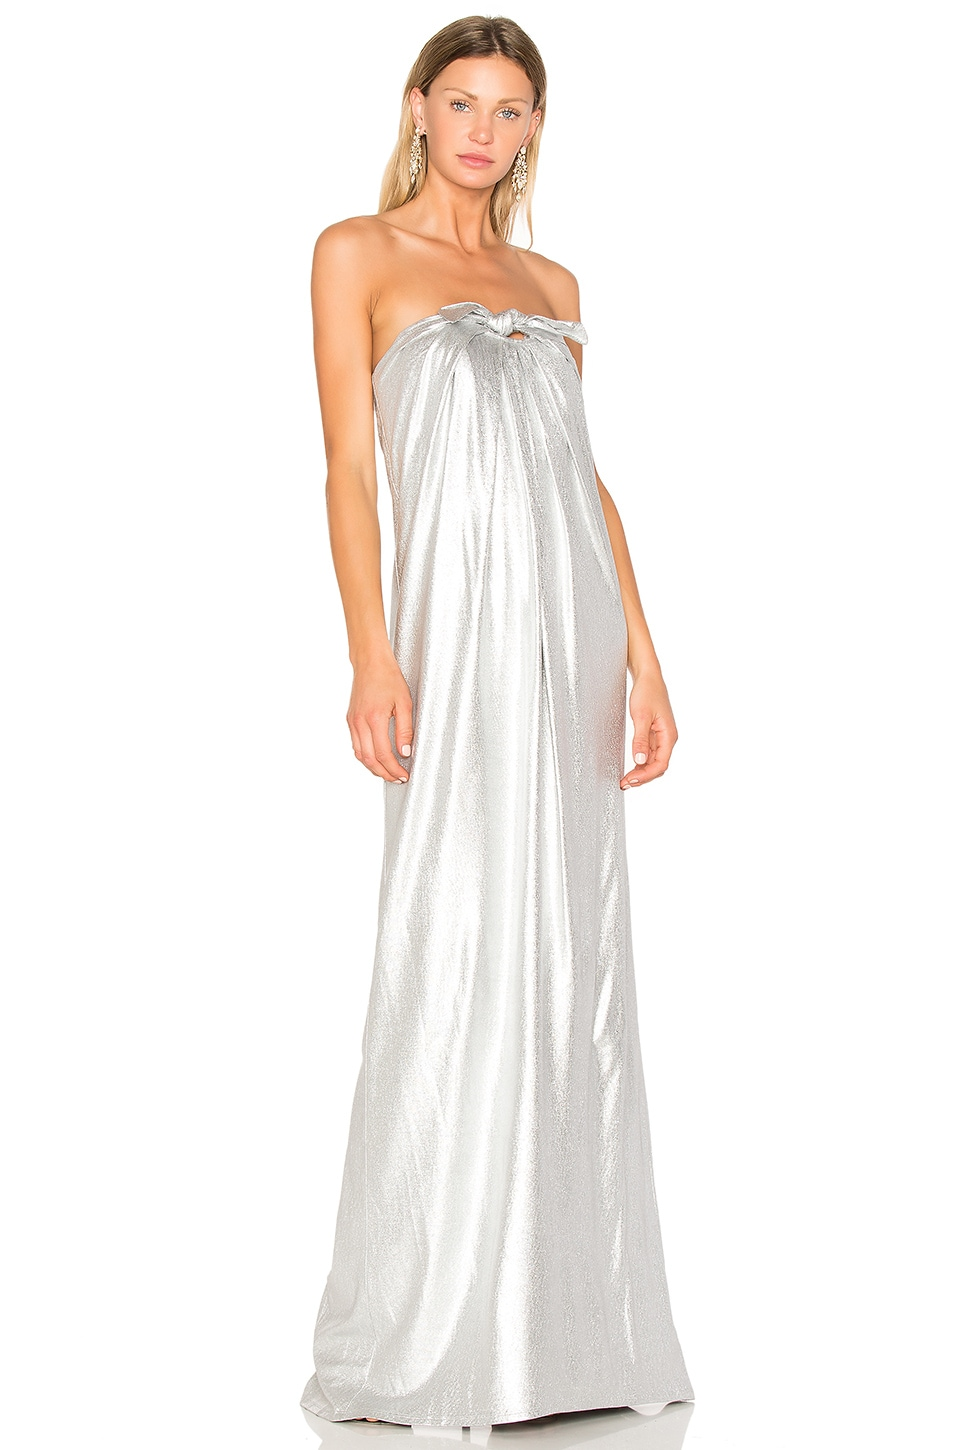 Halston Heritage Gown With Front Twist in Silver | REVOLVE